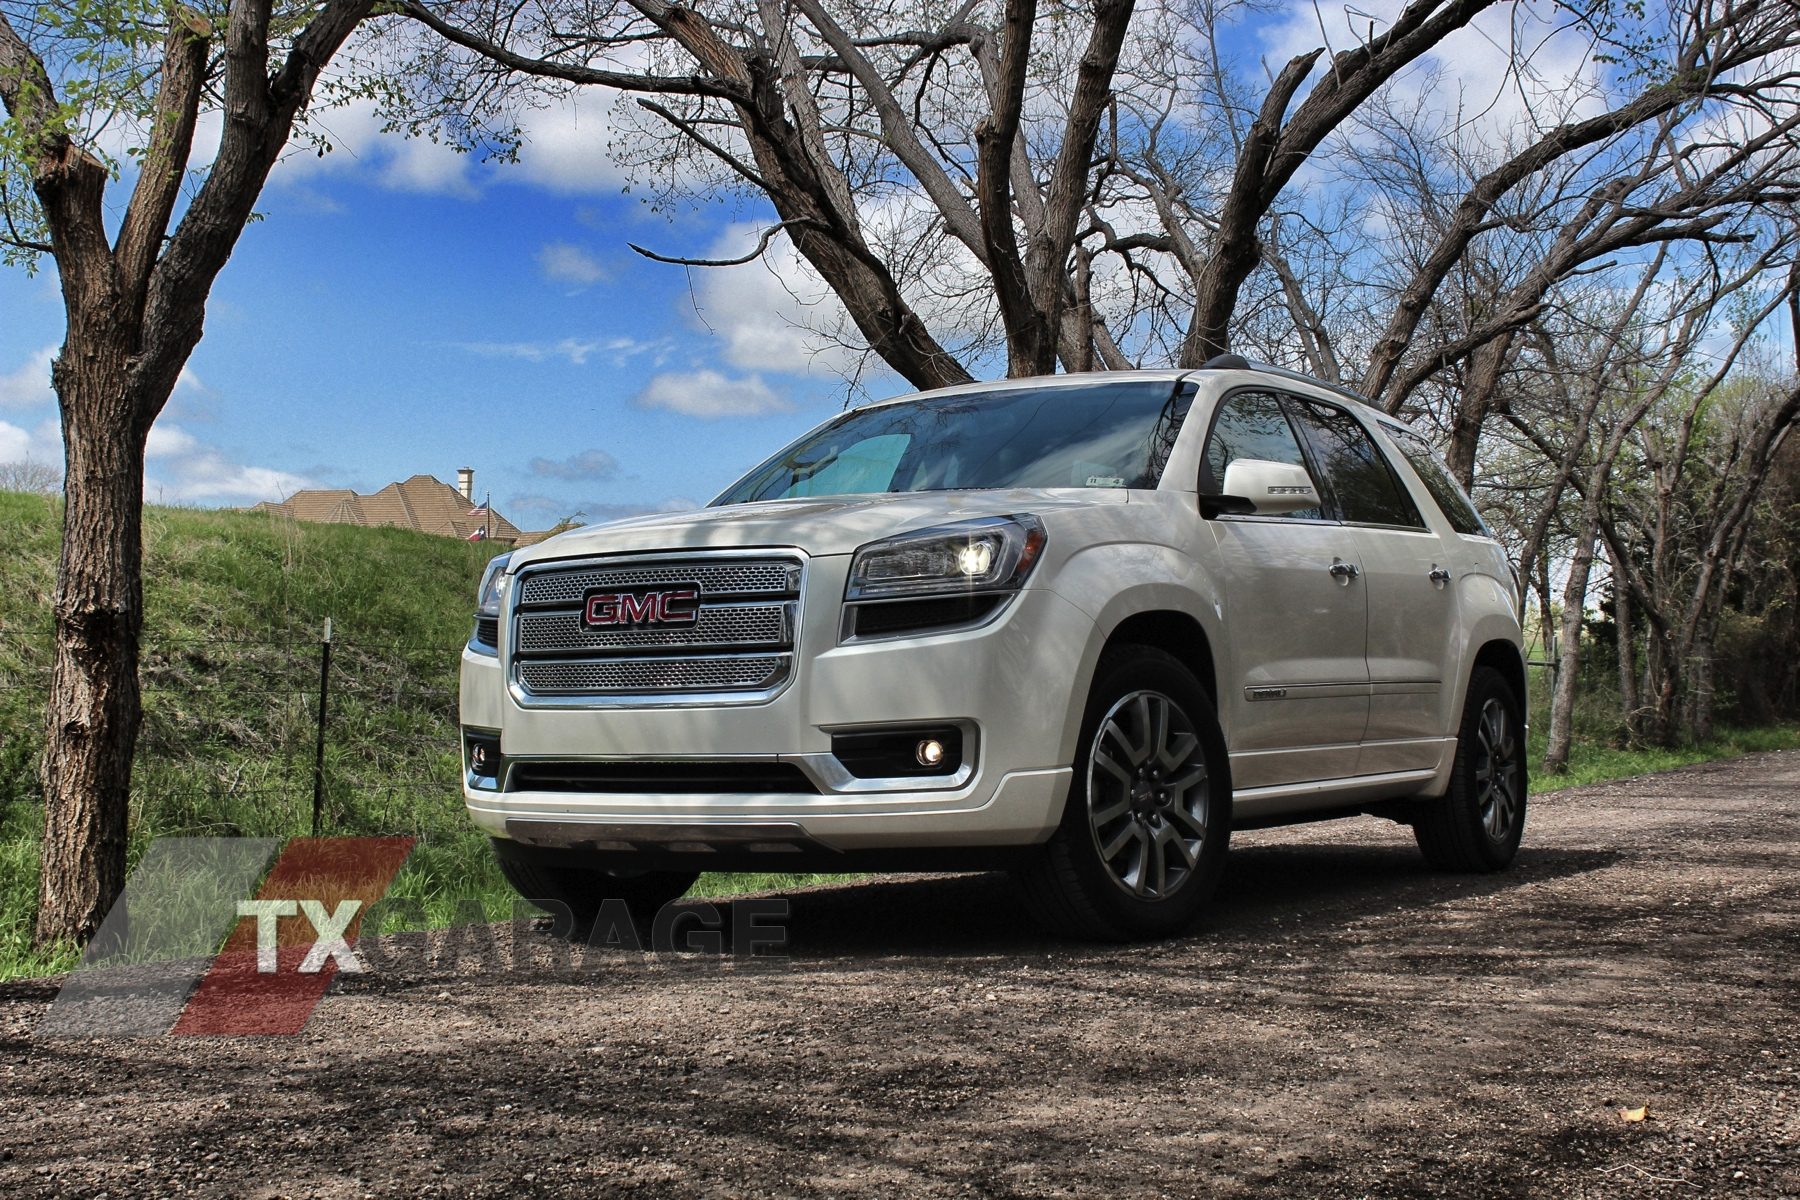 Full Review of the 2013 GMC Acadia Denali | txGarage